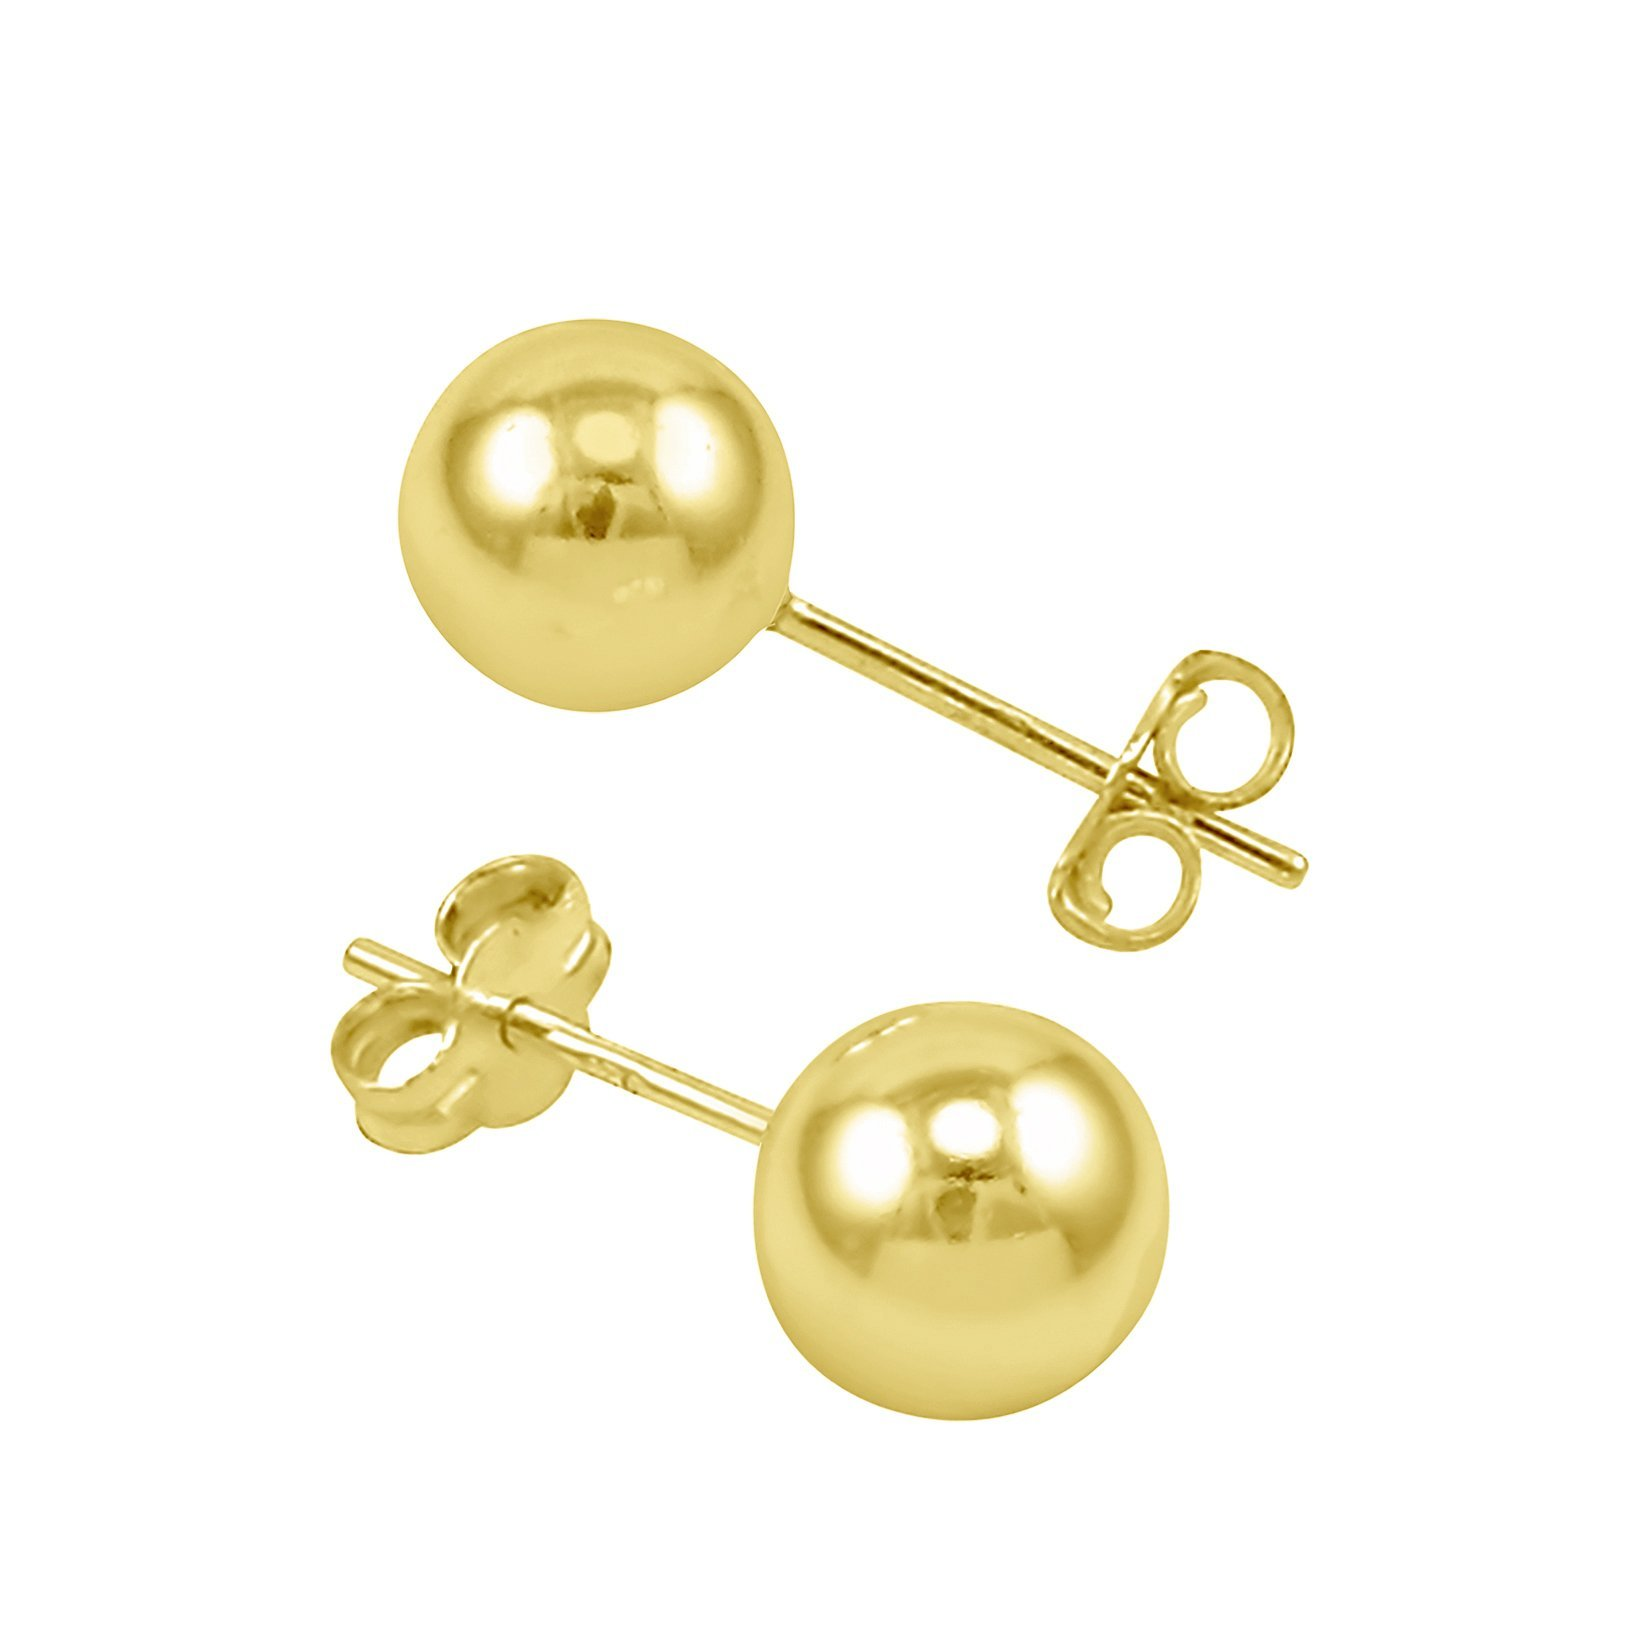 14K Yellow Gold Filled Round Ball Stud Earrings Pushback 7mm